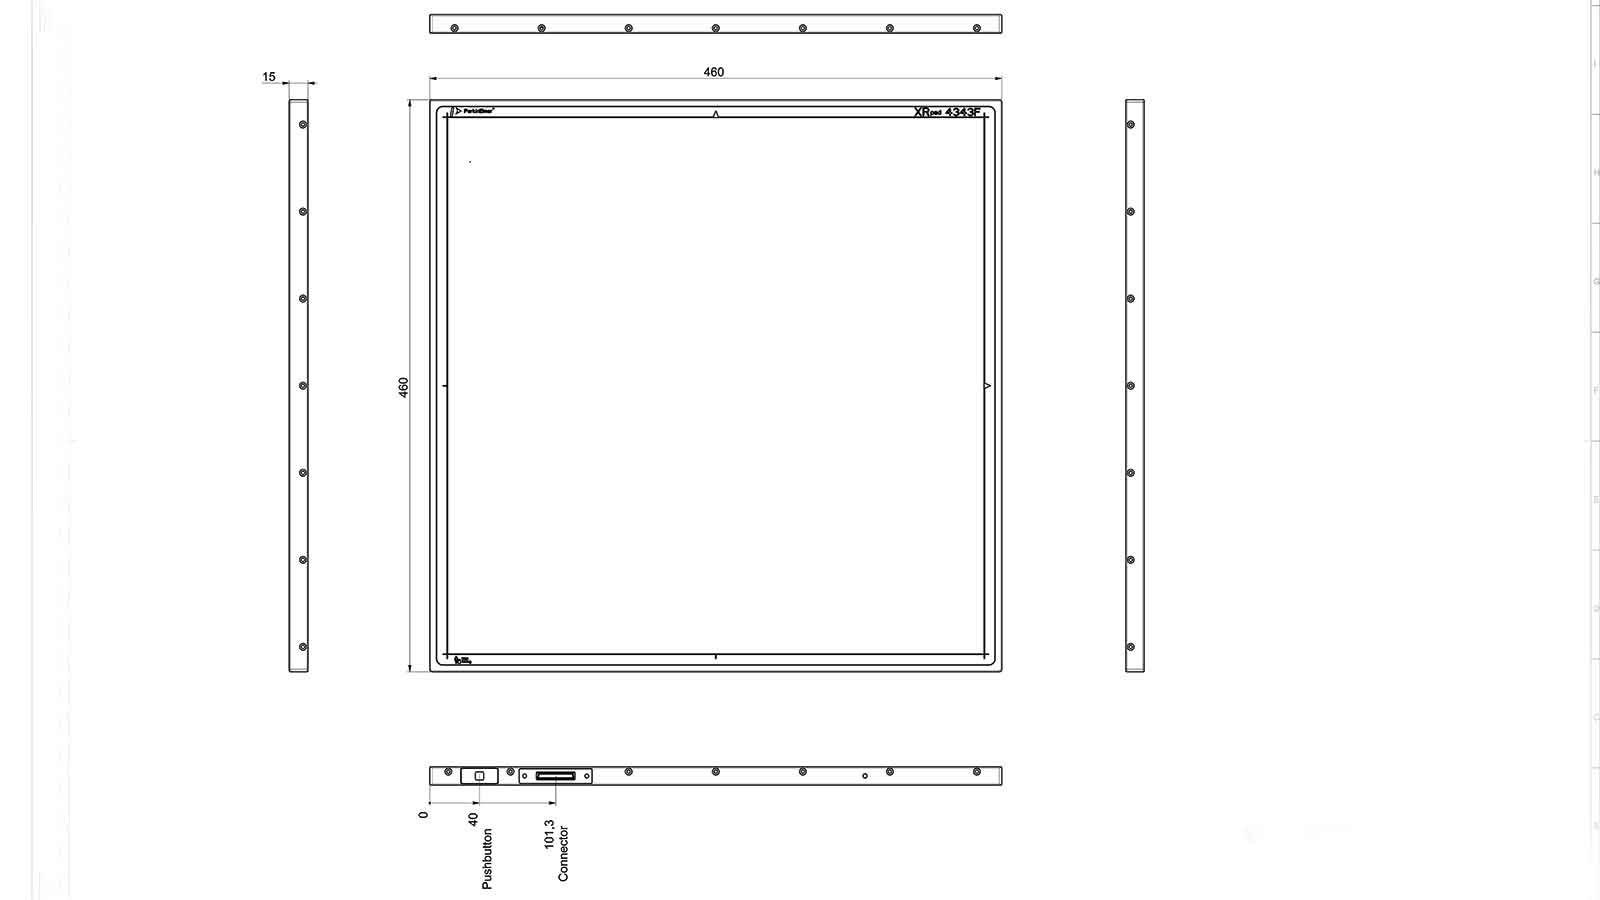 Mechanical Drawing of the XRpad 4343F wireless flat panel X-ray detector